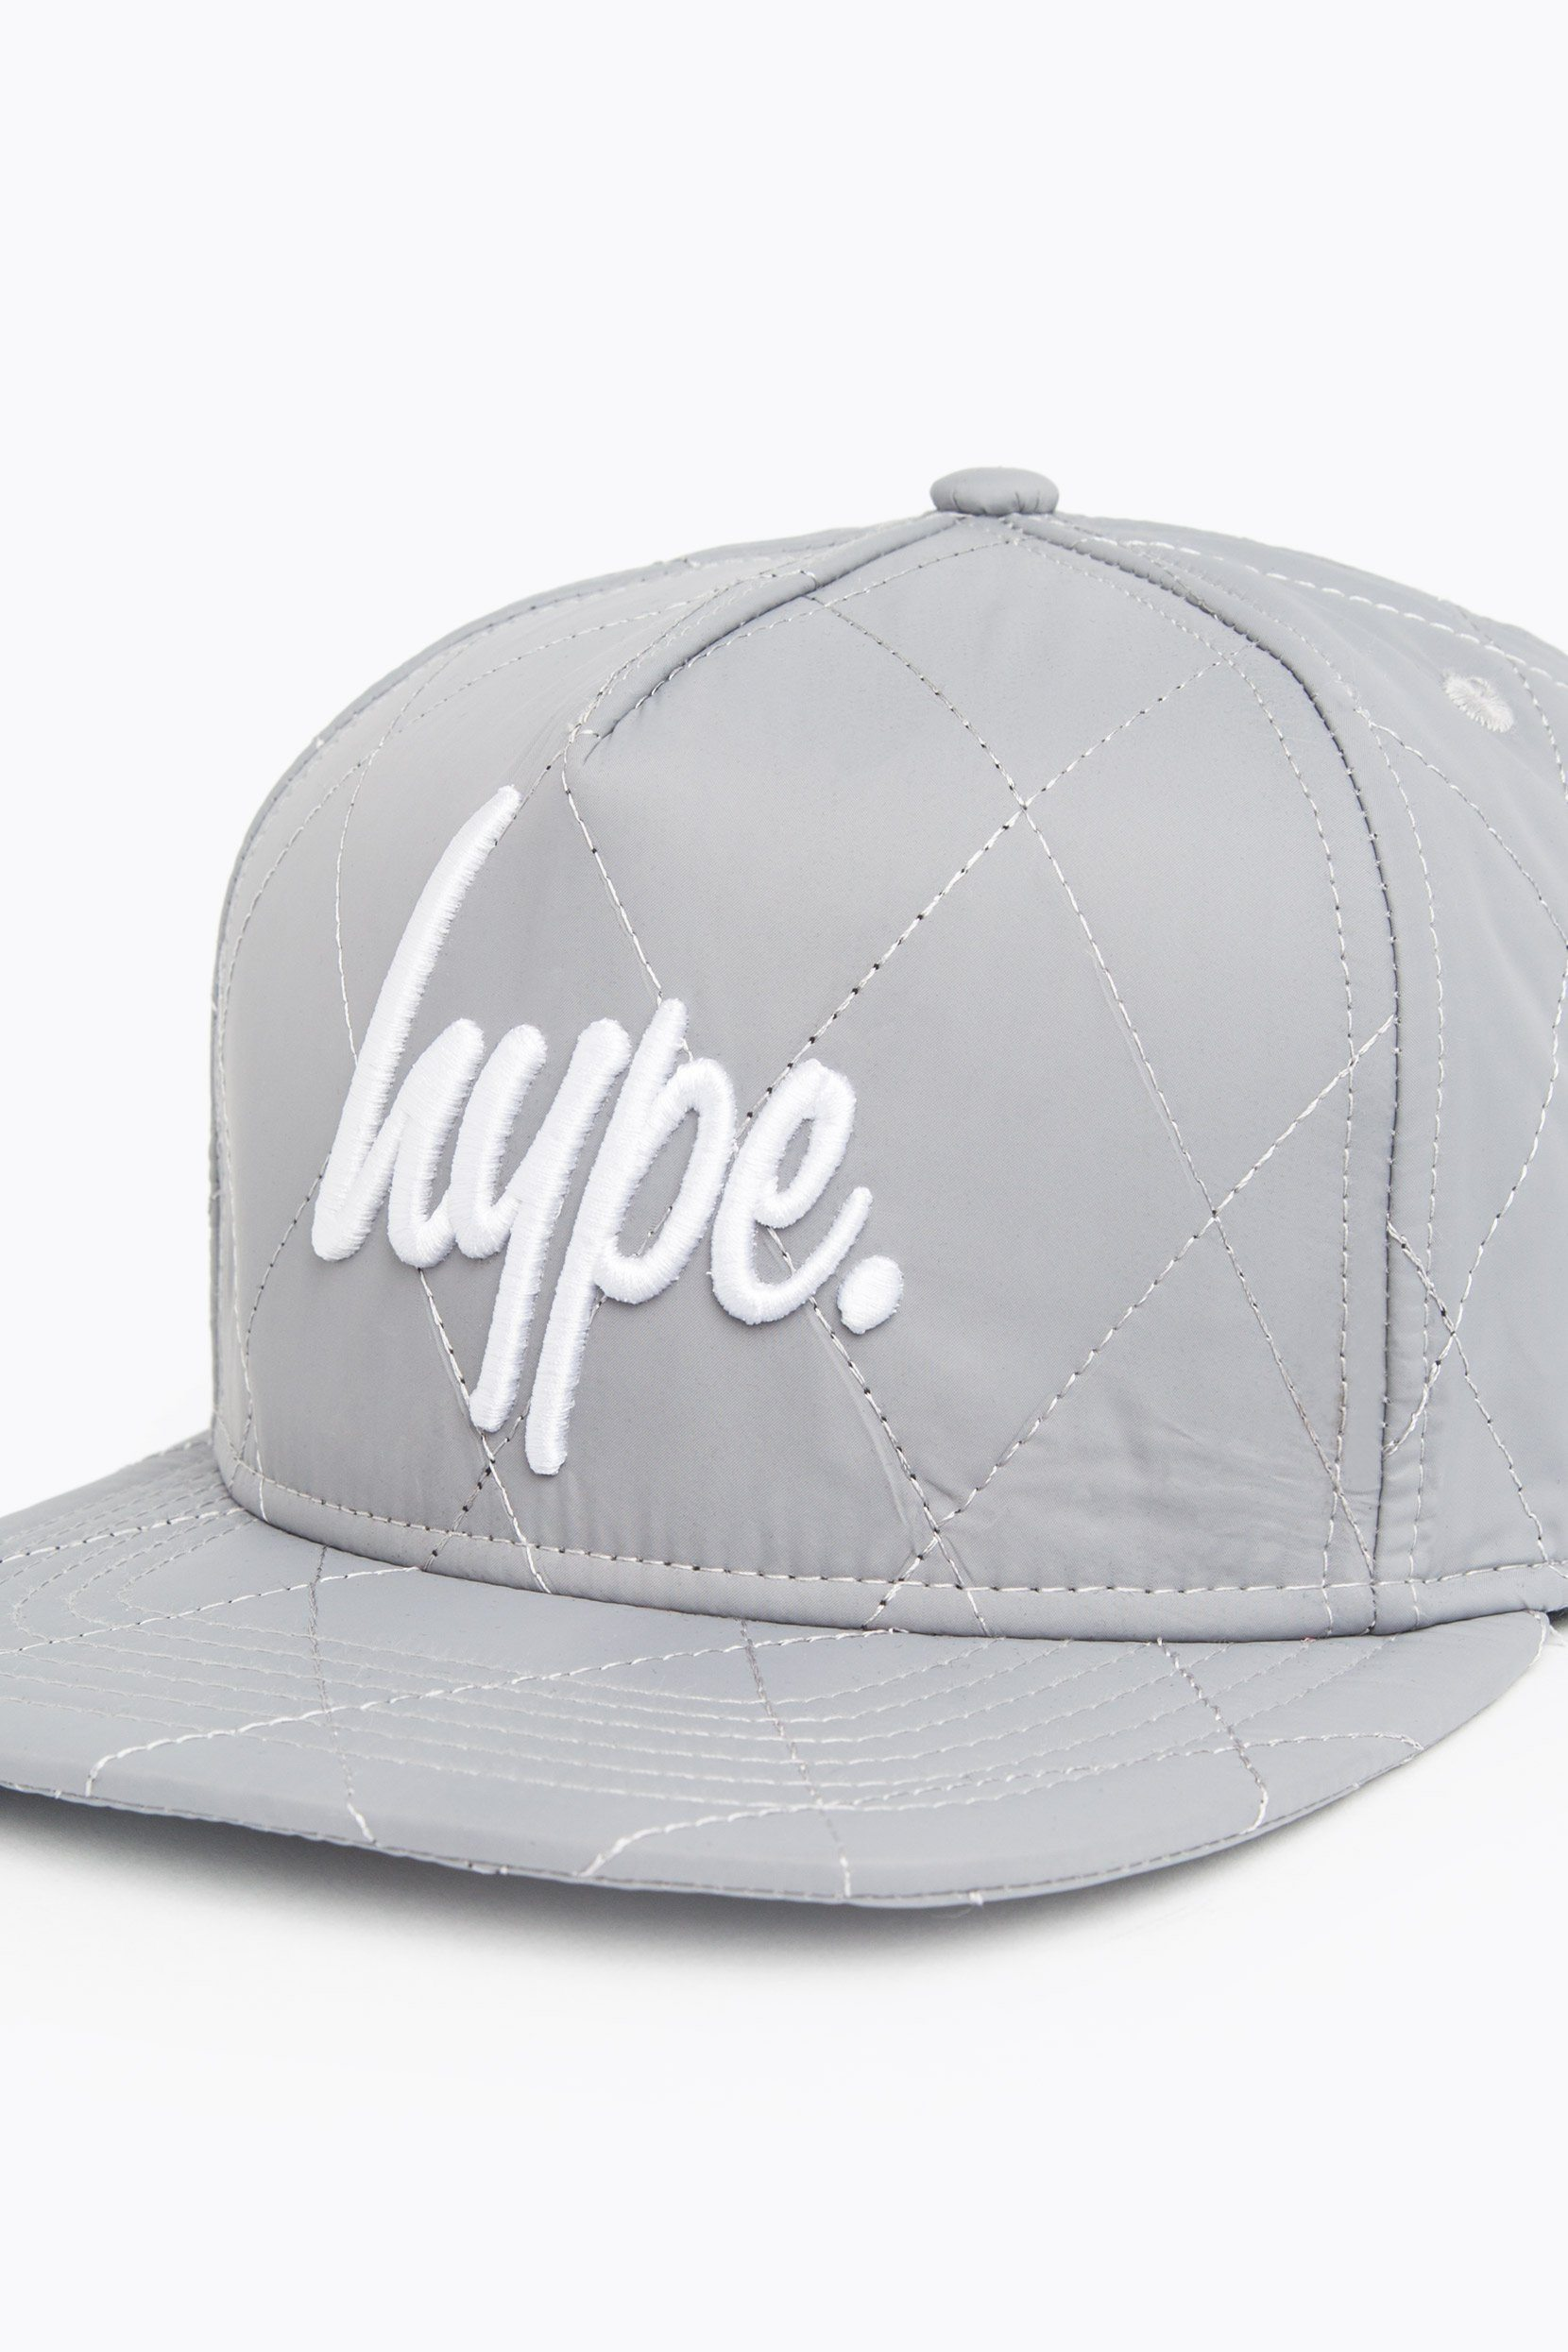 HYPE Reflective/White Quilted Reflective Snapback Hat